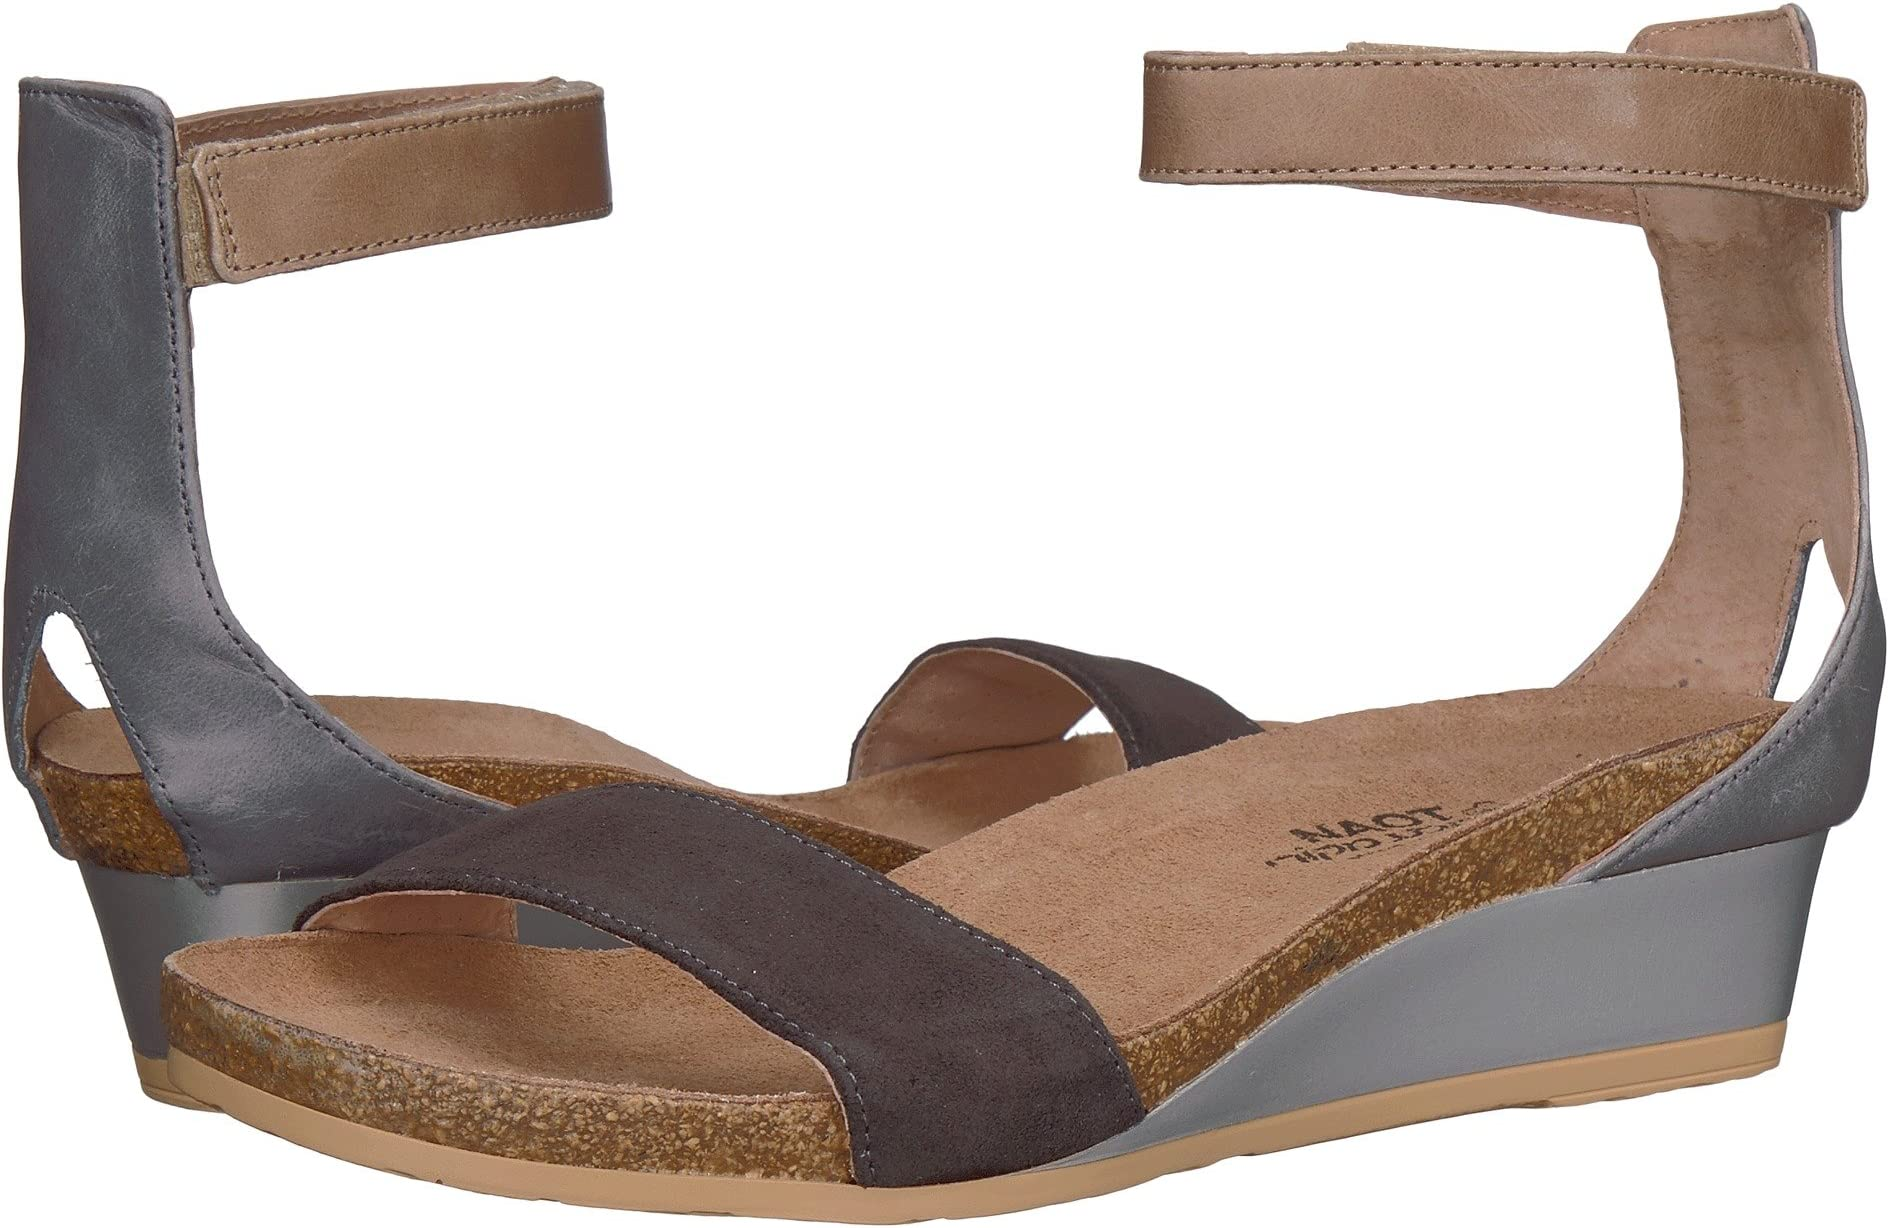 Links to sandals